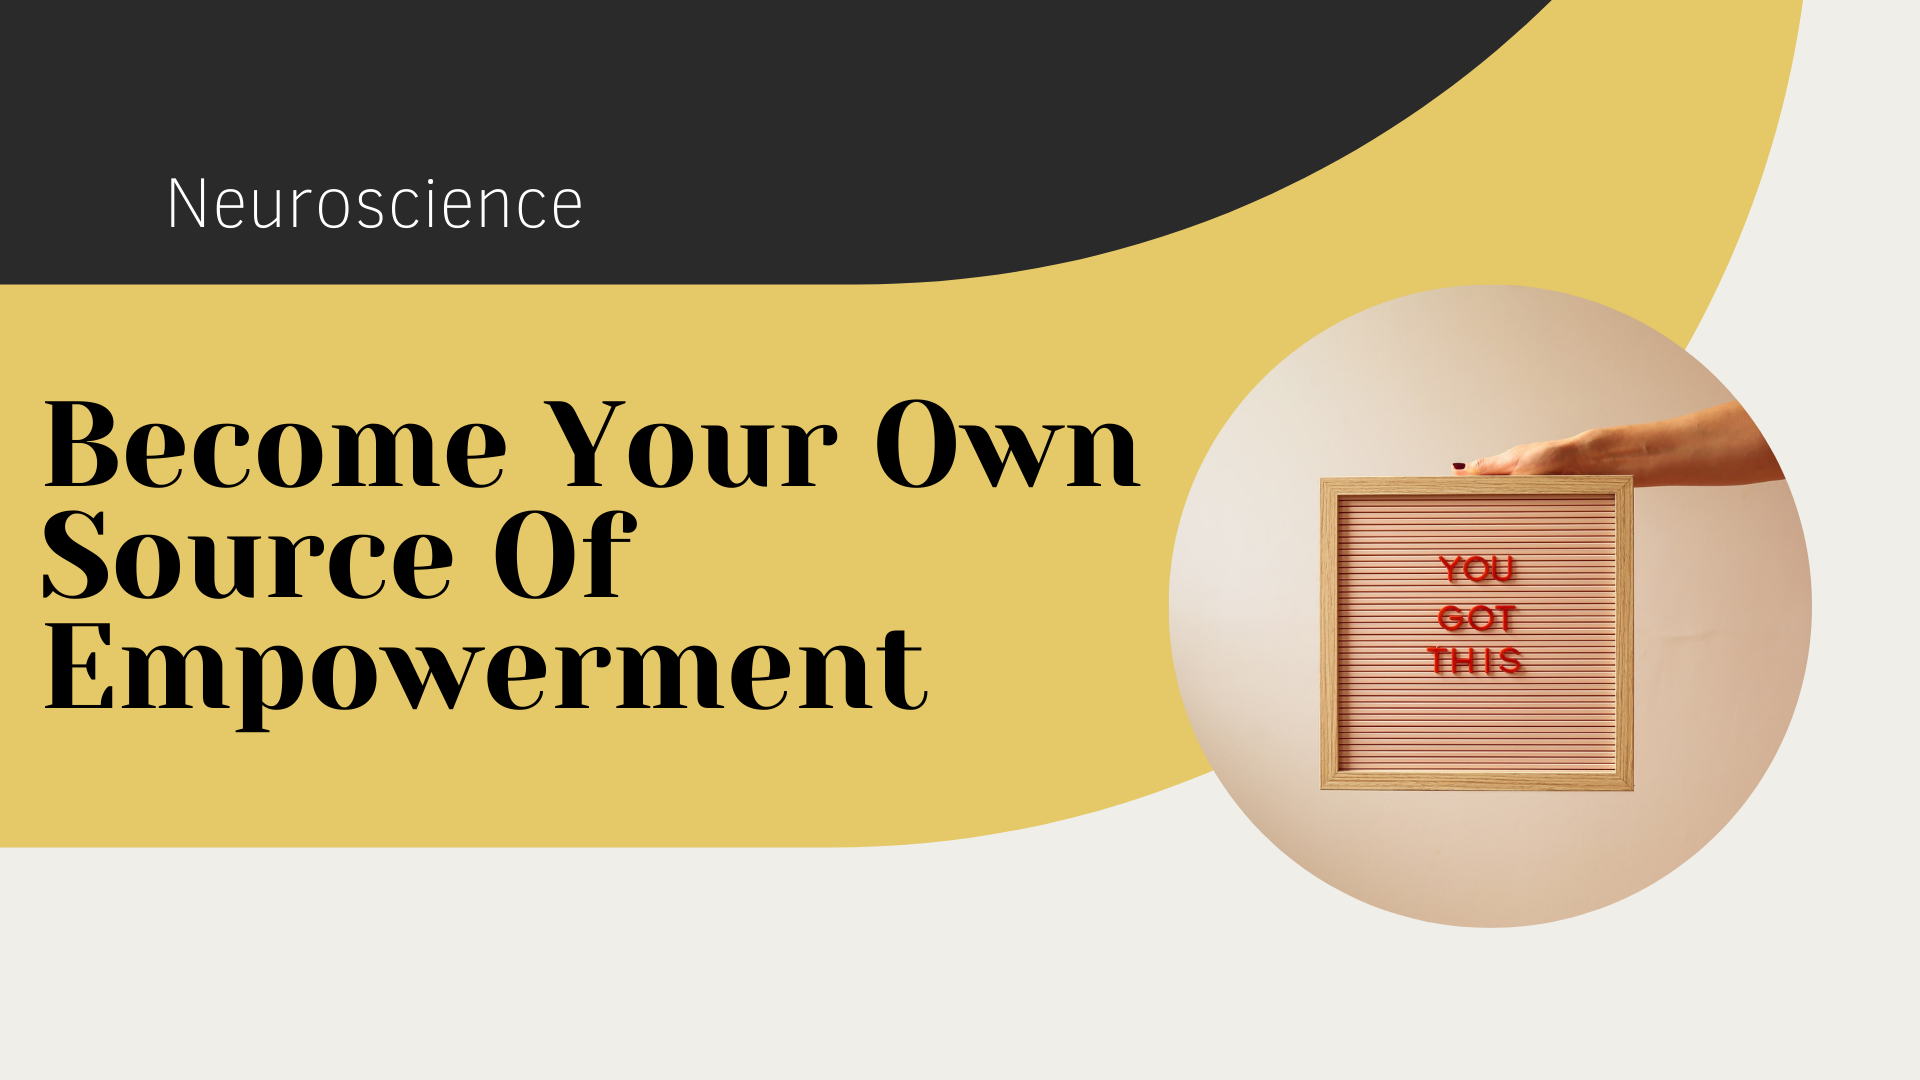 Become Your Own Source Of Empowerment